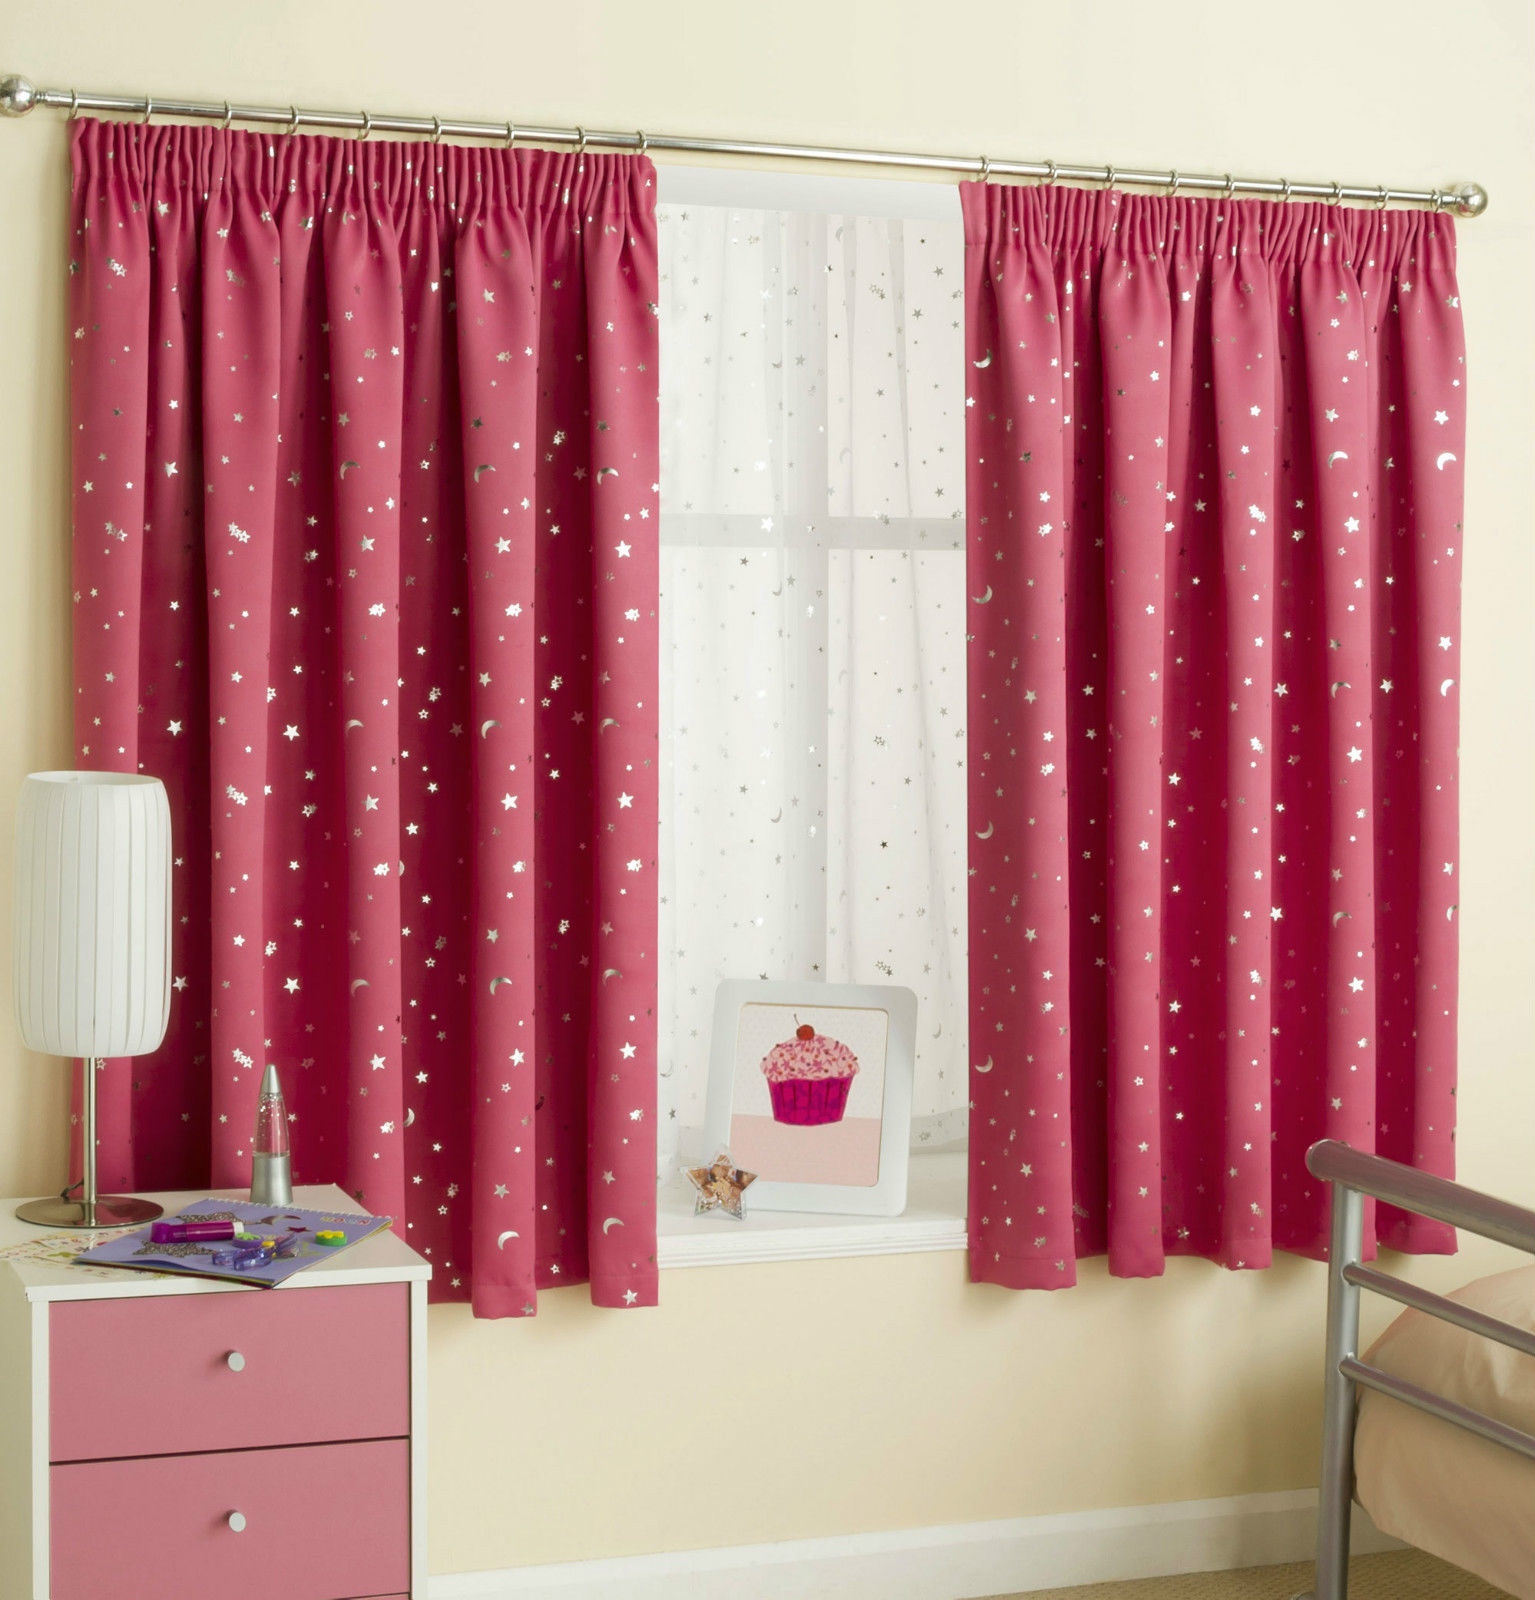 Childrens Moons Stars Curtains Thermal Blockout Tape Pencil Pleat Kids Nursery